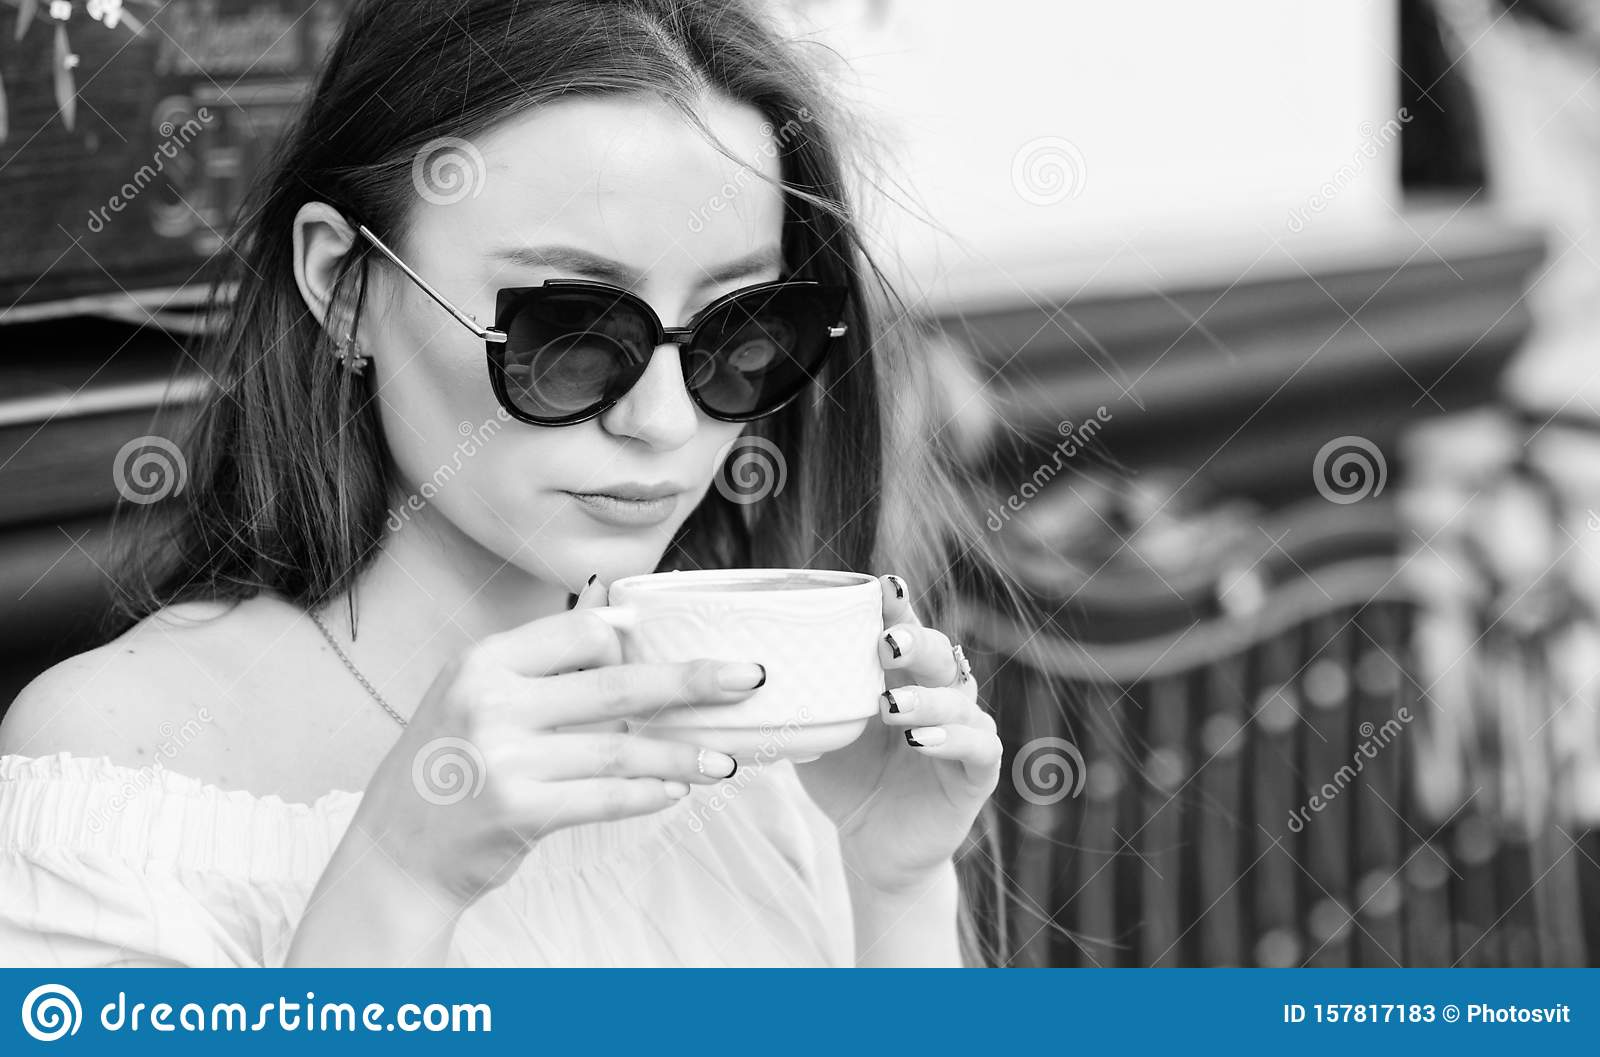 Good morning. Breakfast time. stylish woman in glasses drink coffee. girl relax in cafe. Business lunch. morning coffee